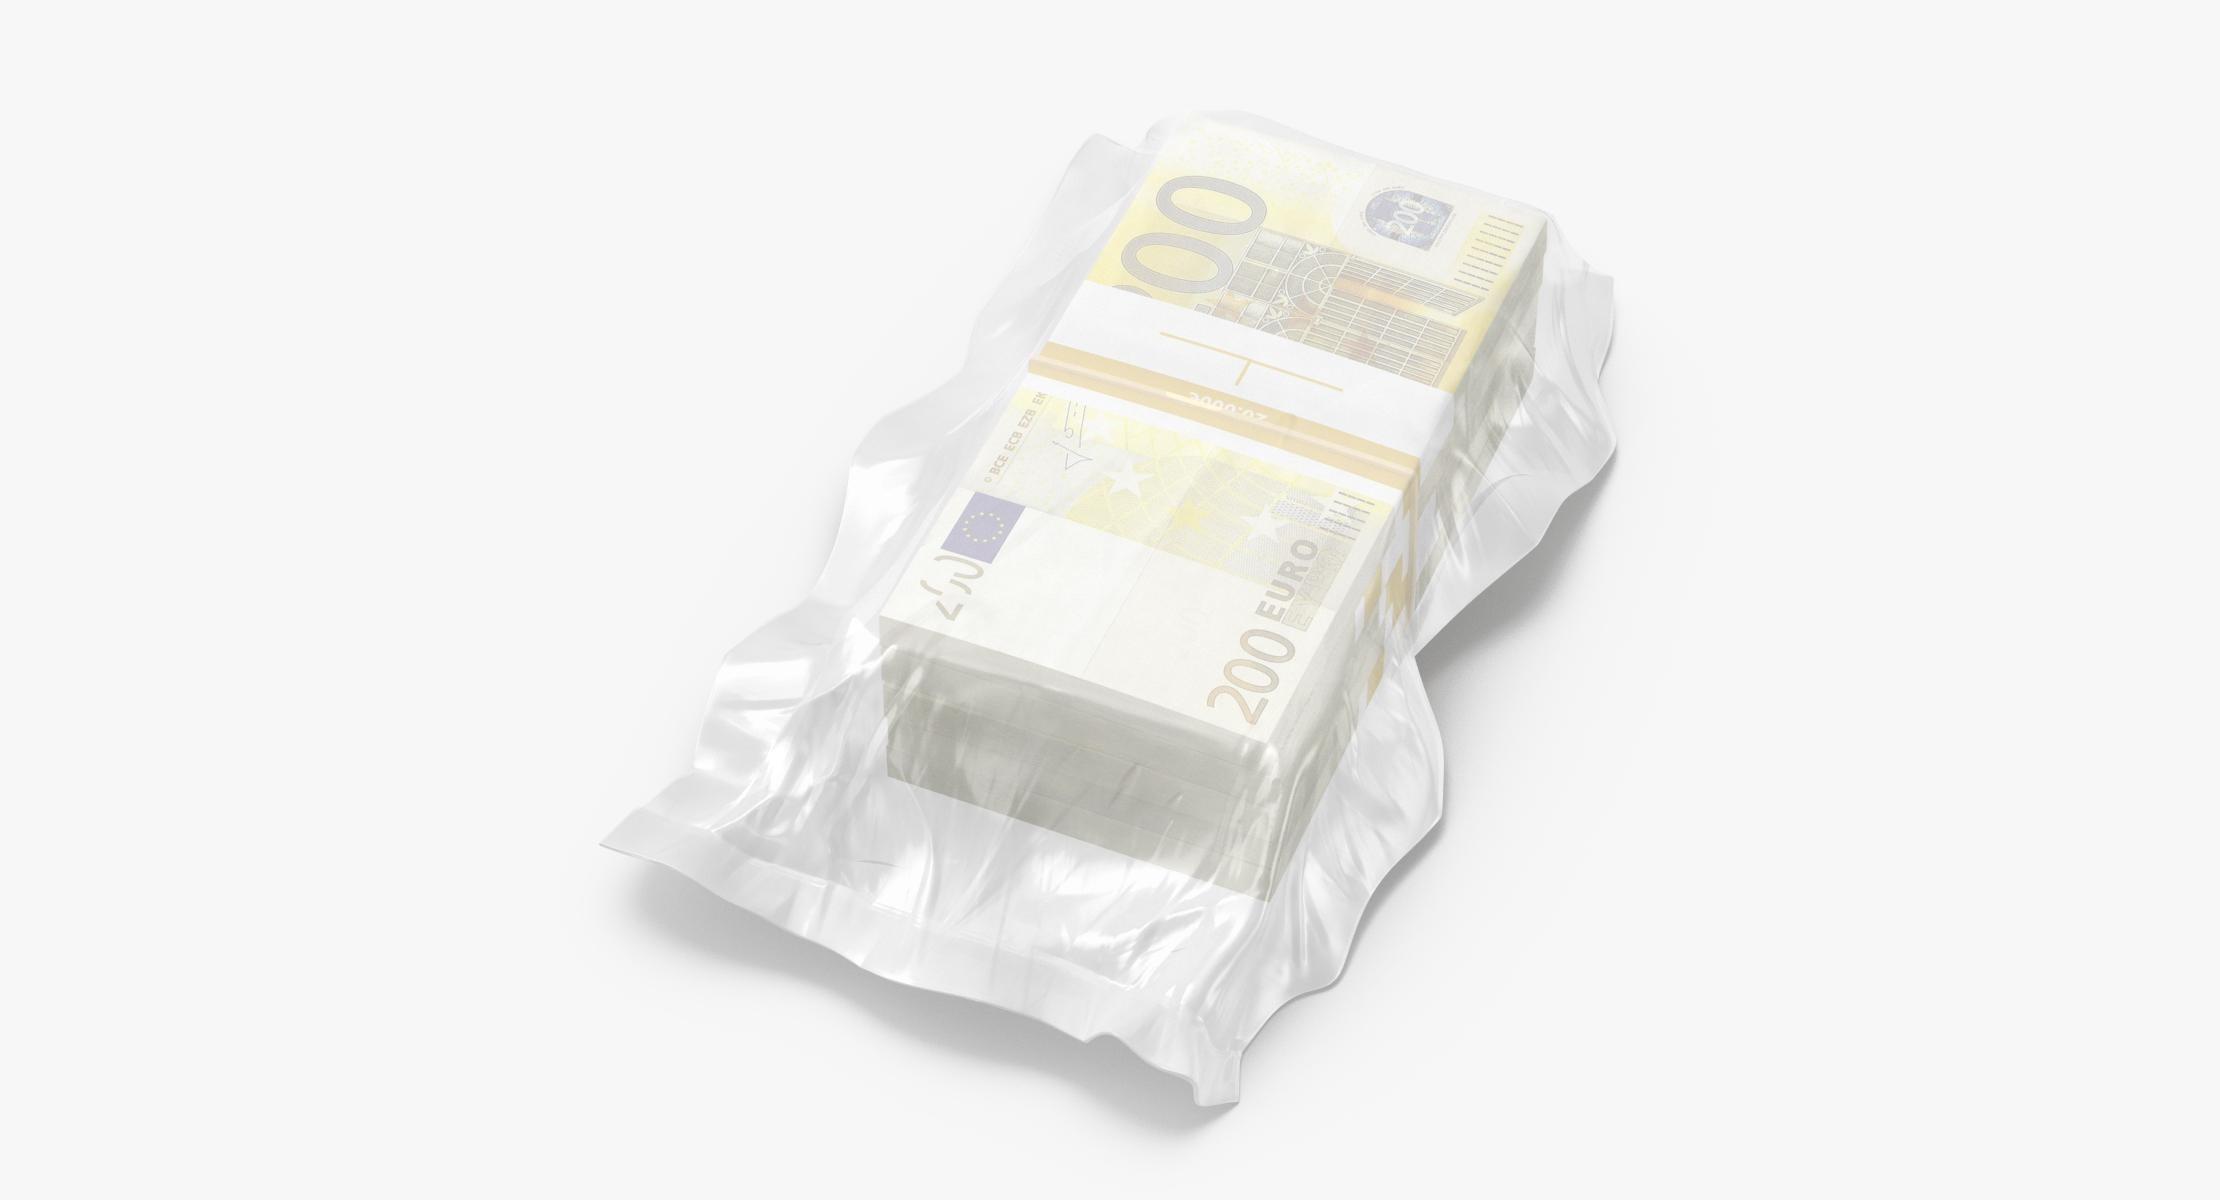 Wrapped Bills of Money - 200 Euro Stacks 02 - reel 1